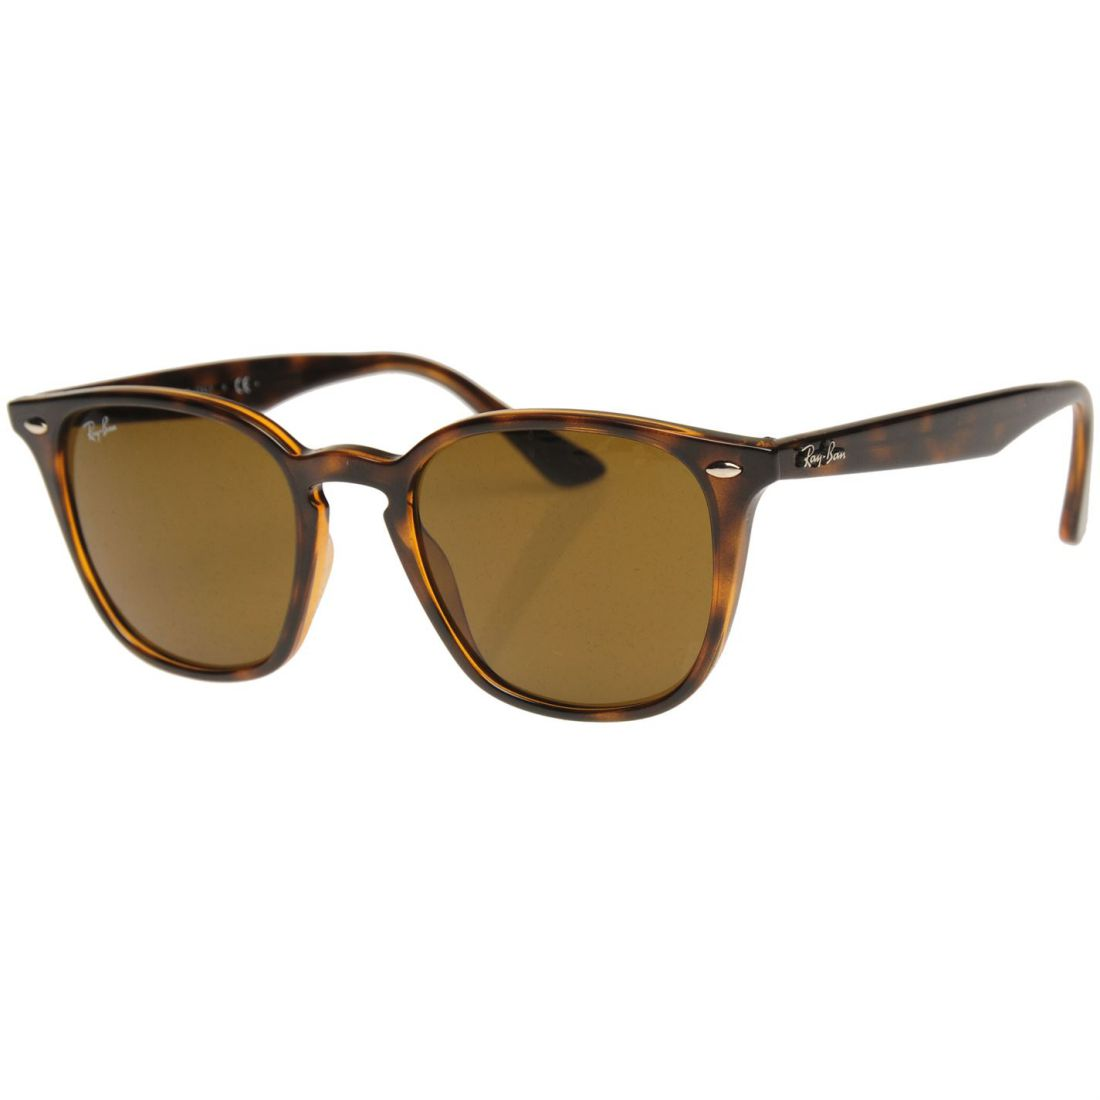 831b2bb2e31cb Details about Womens Ray Ban RB4258 Sunglasses New